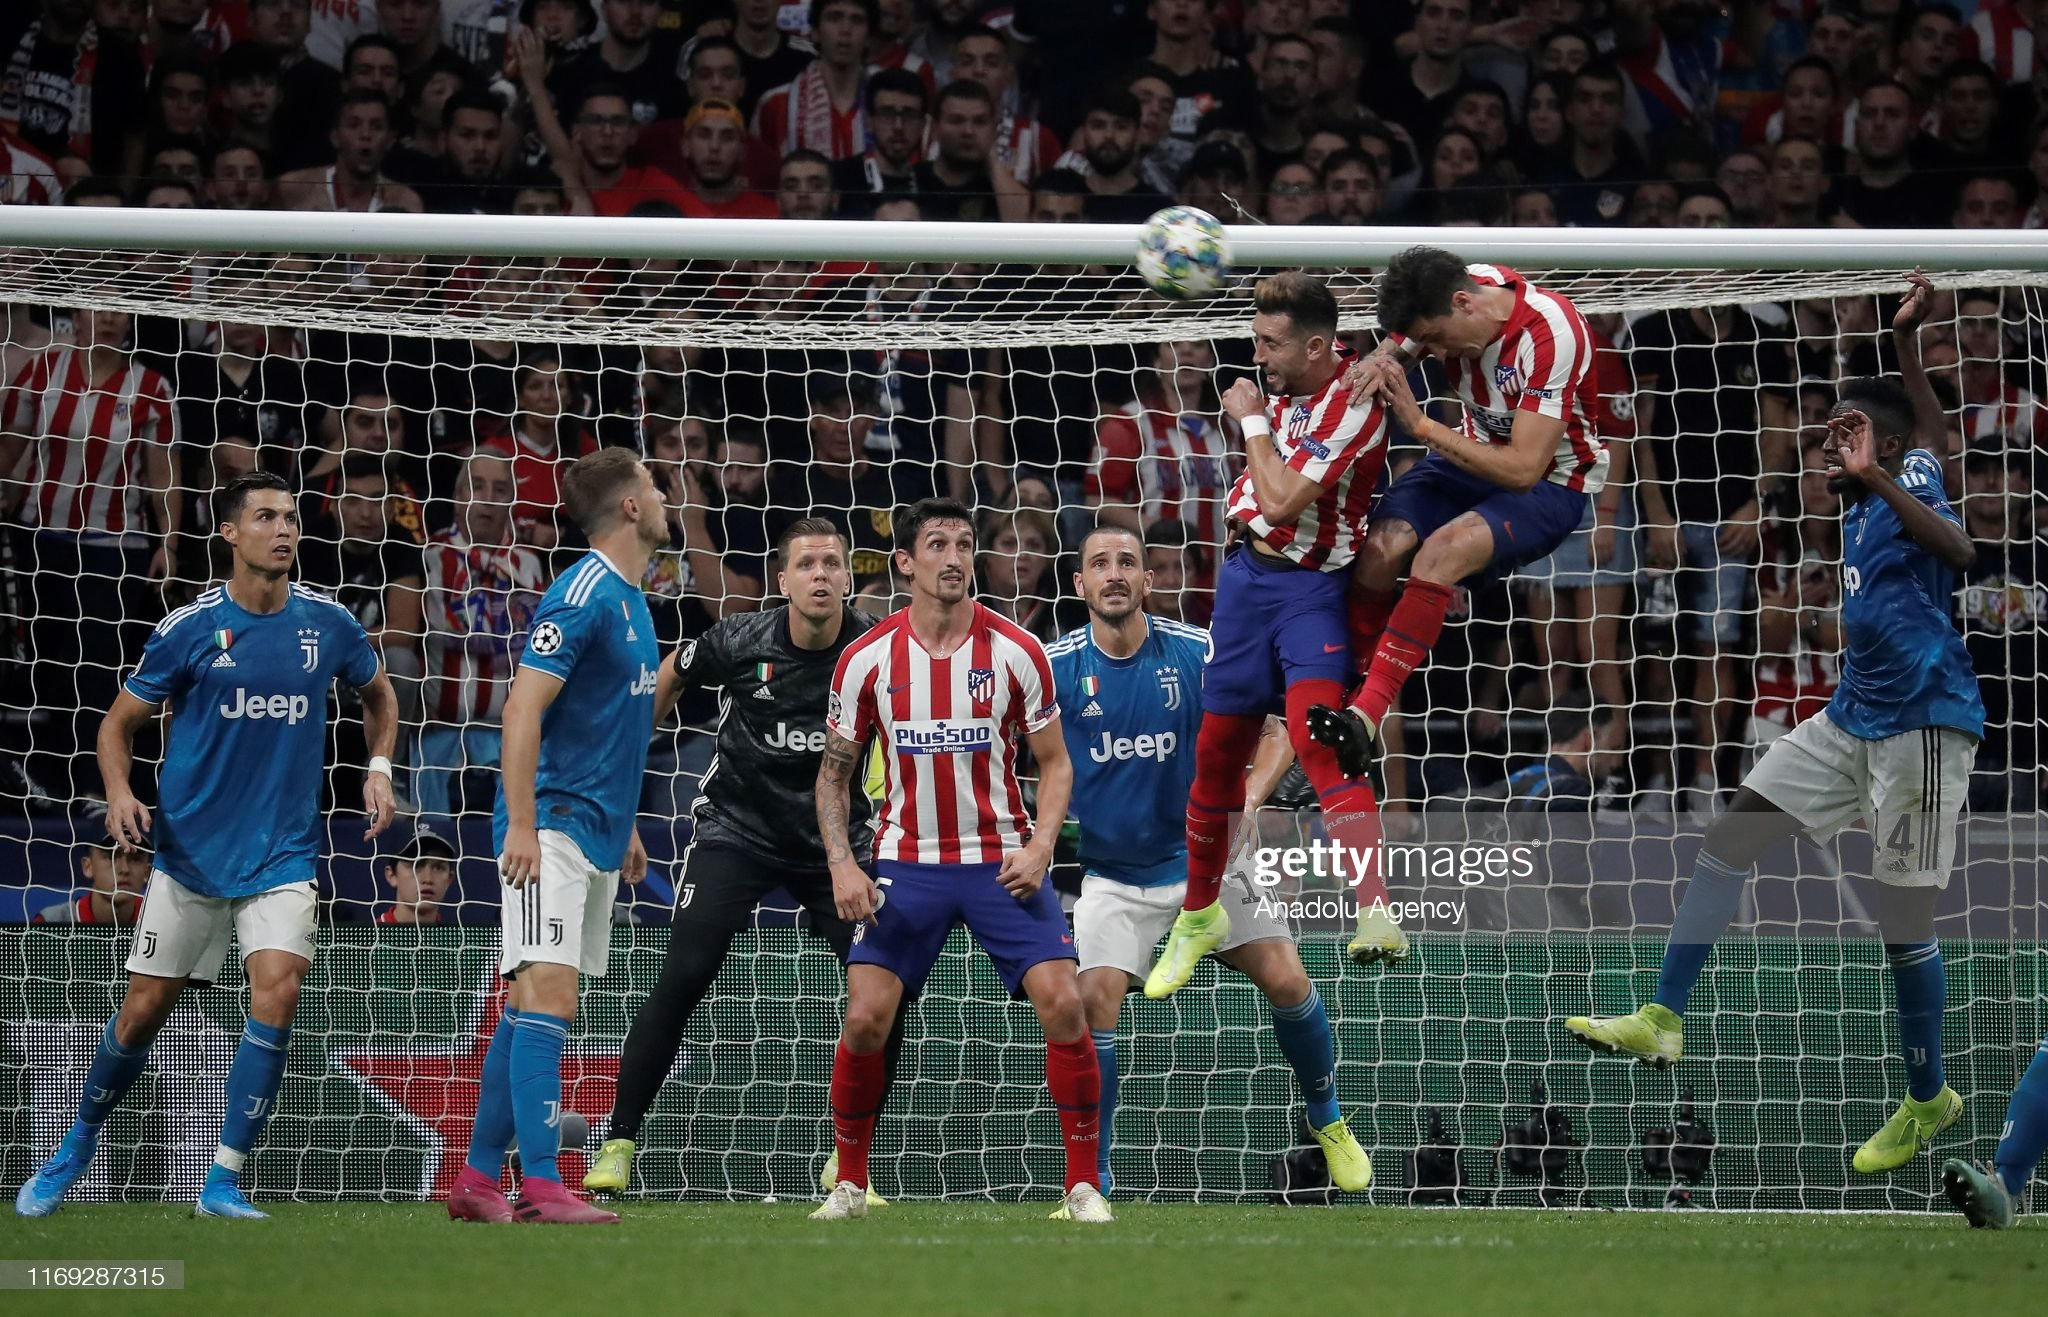 Juventus v Atletico Madrid preview, prediction and odds